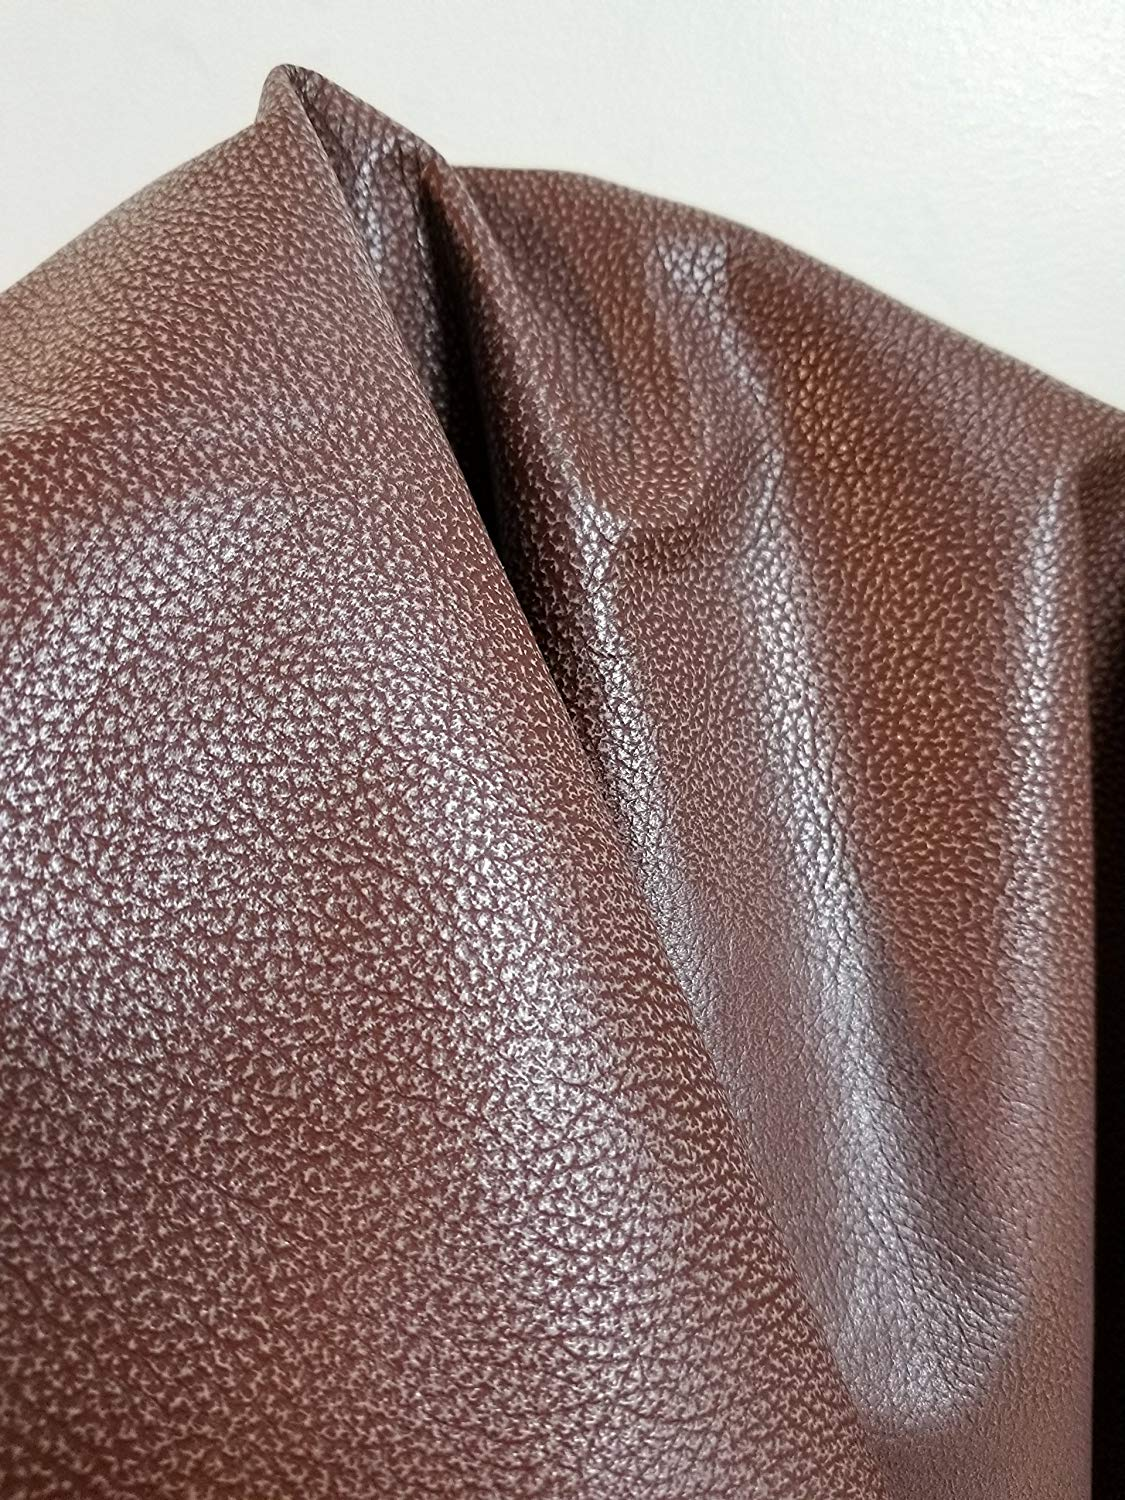 """20"""" x 28"""" cut piece sq.ft. Brown Weekender Tracker 2.5 -3.0 oz Two Tone Soft Upholstery Chap Cowhide Genuine Leather Hide Skin (20 inch x 28 inch cut)"""